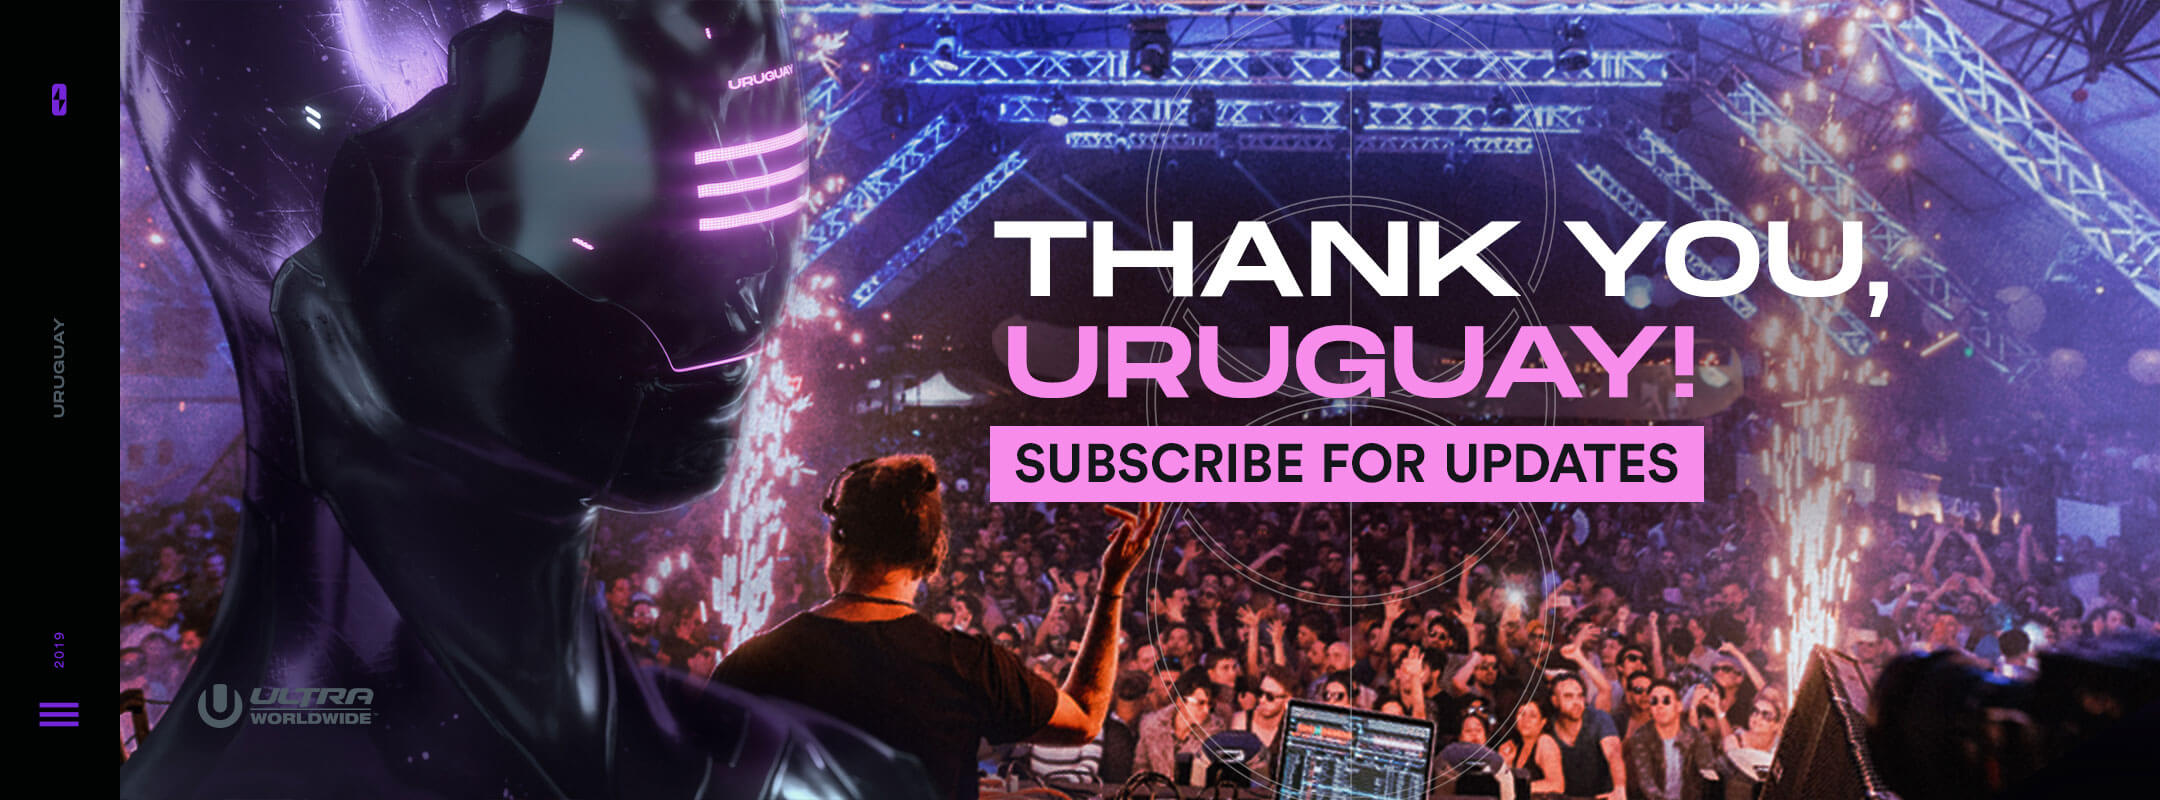 Subscribe for Updates for RESISTANCE Uruguay